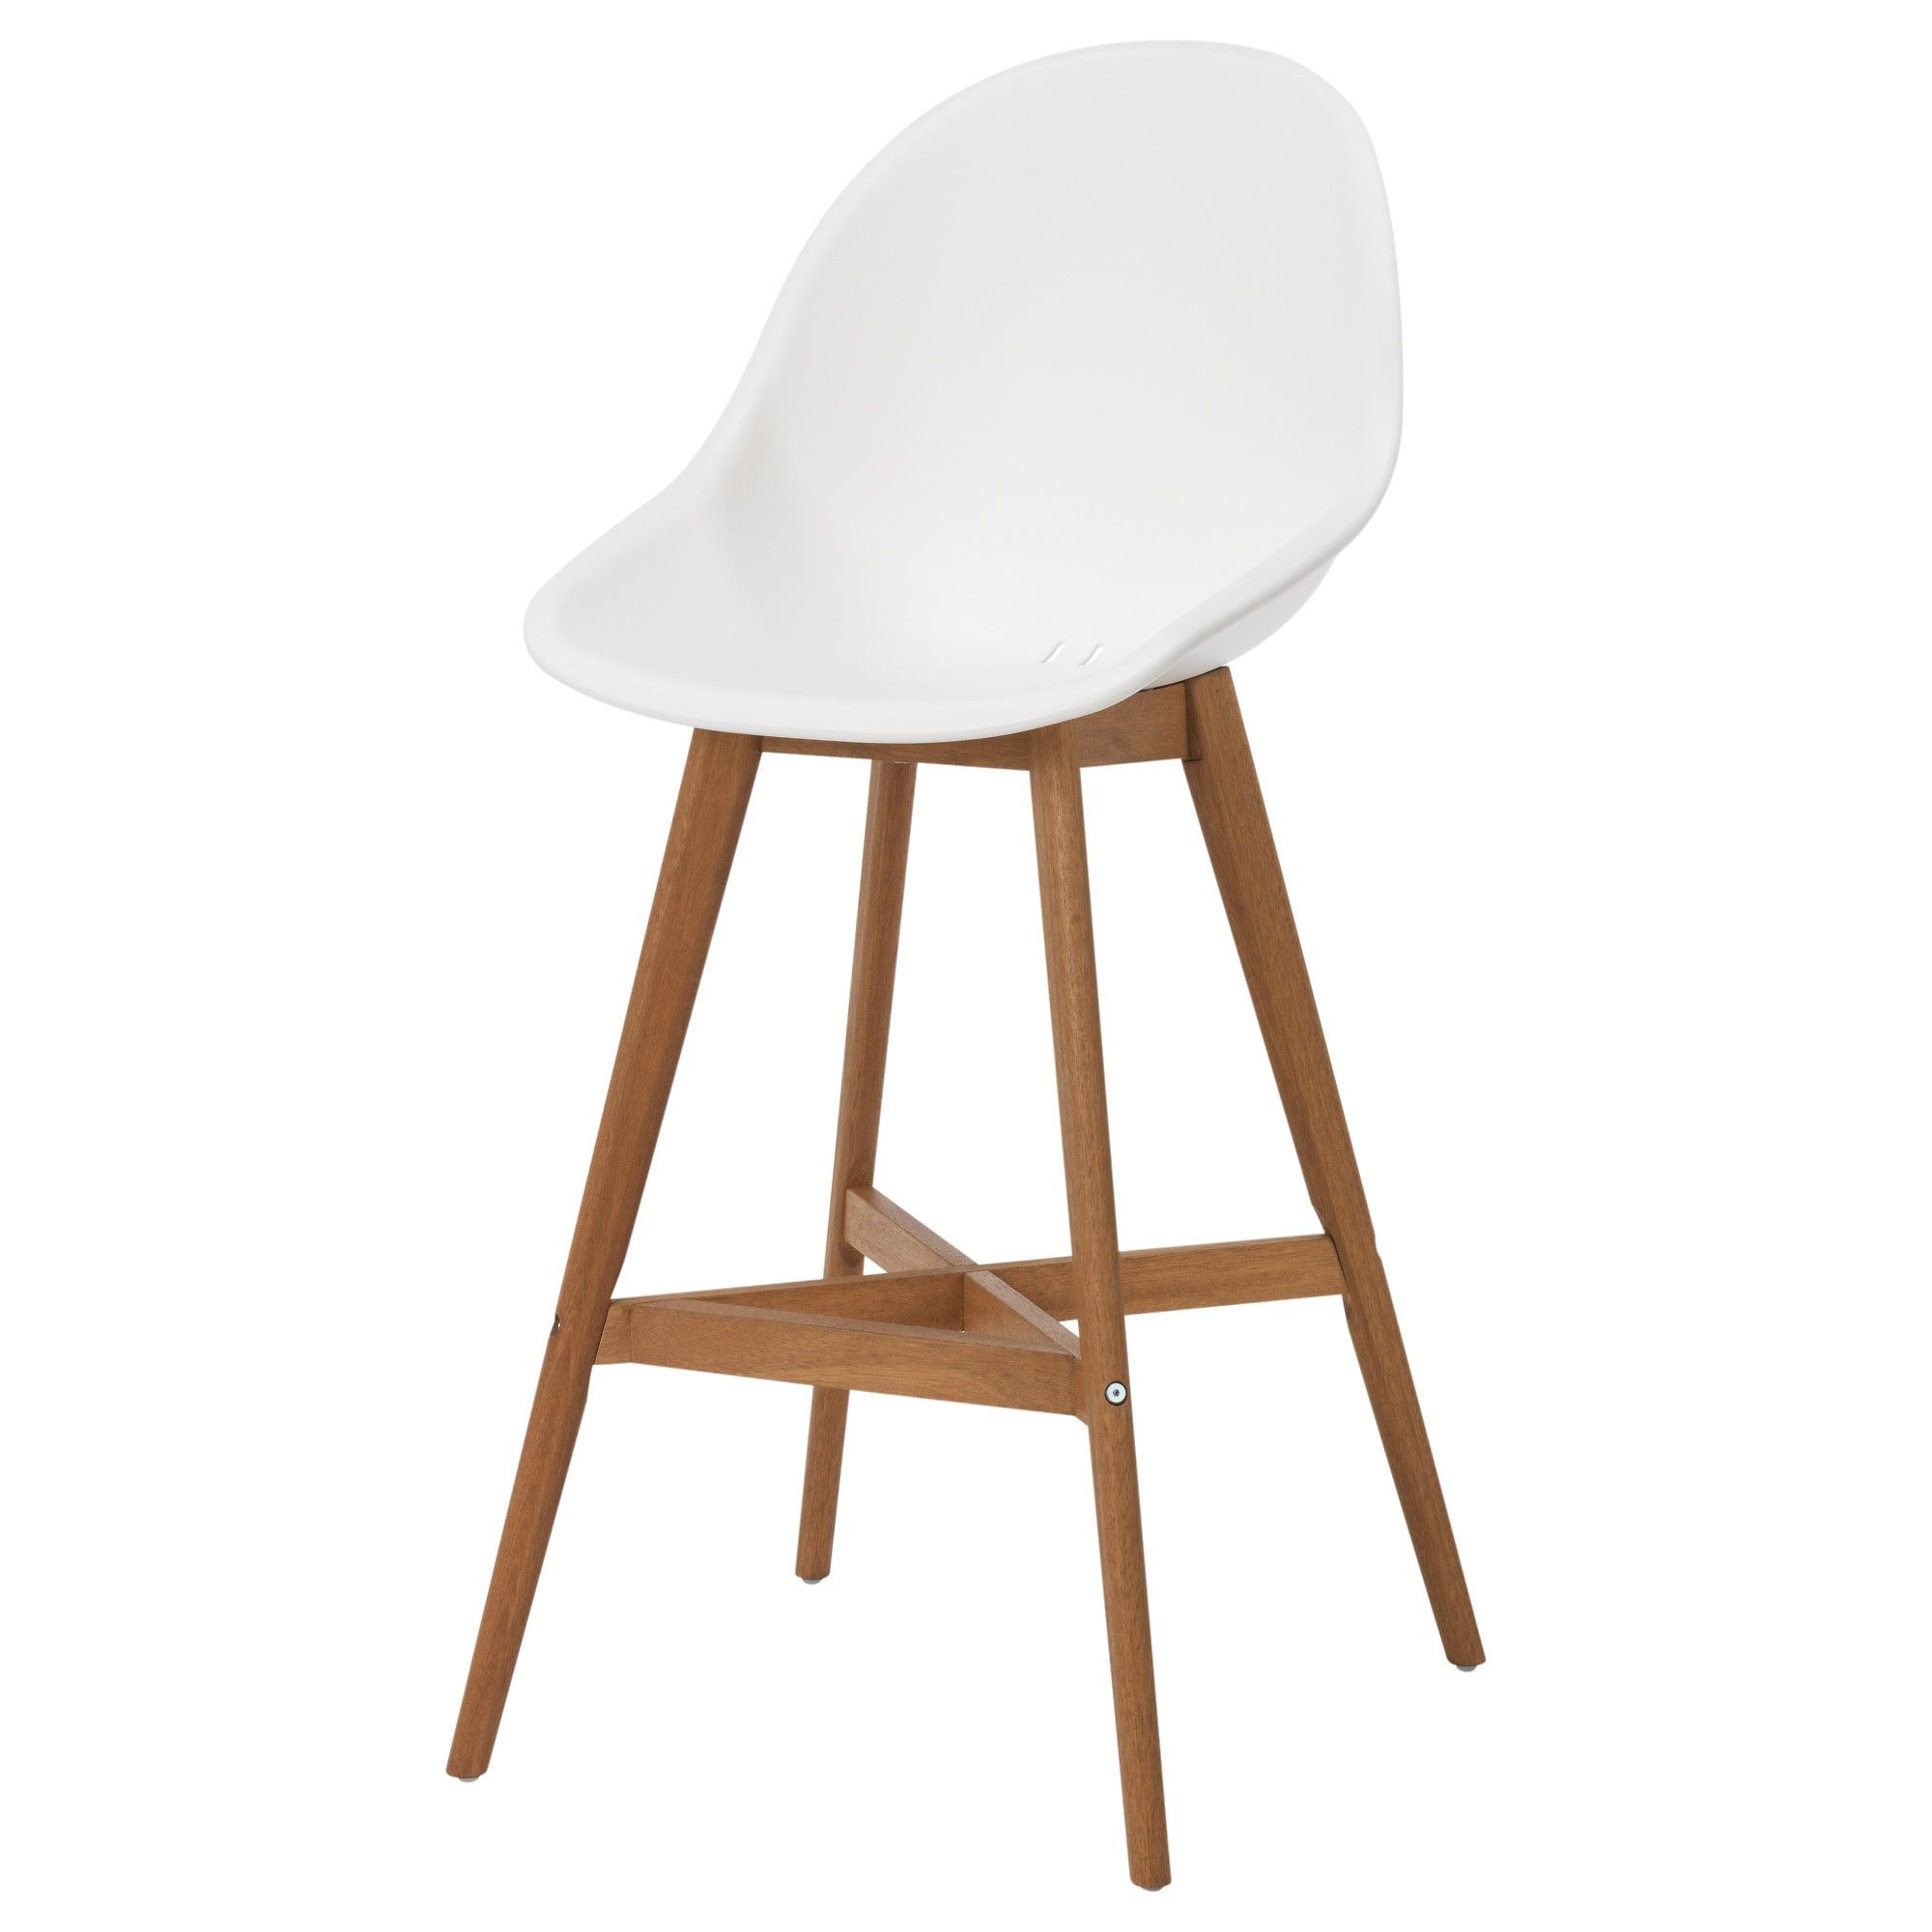 Fanbyn Bar Stool With Backrest White Ikea Ikea Barstools Bar Stools Kitchen Bar Stools